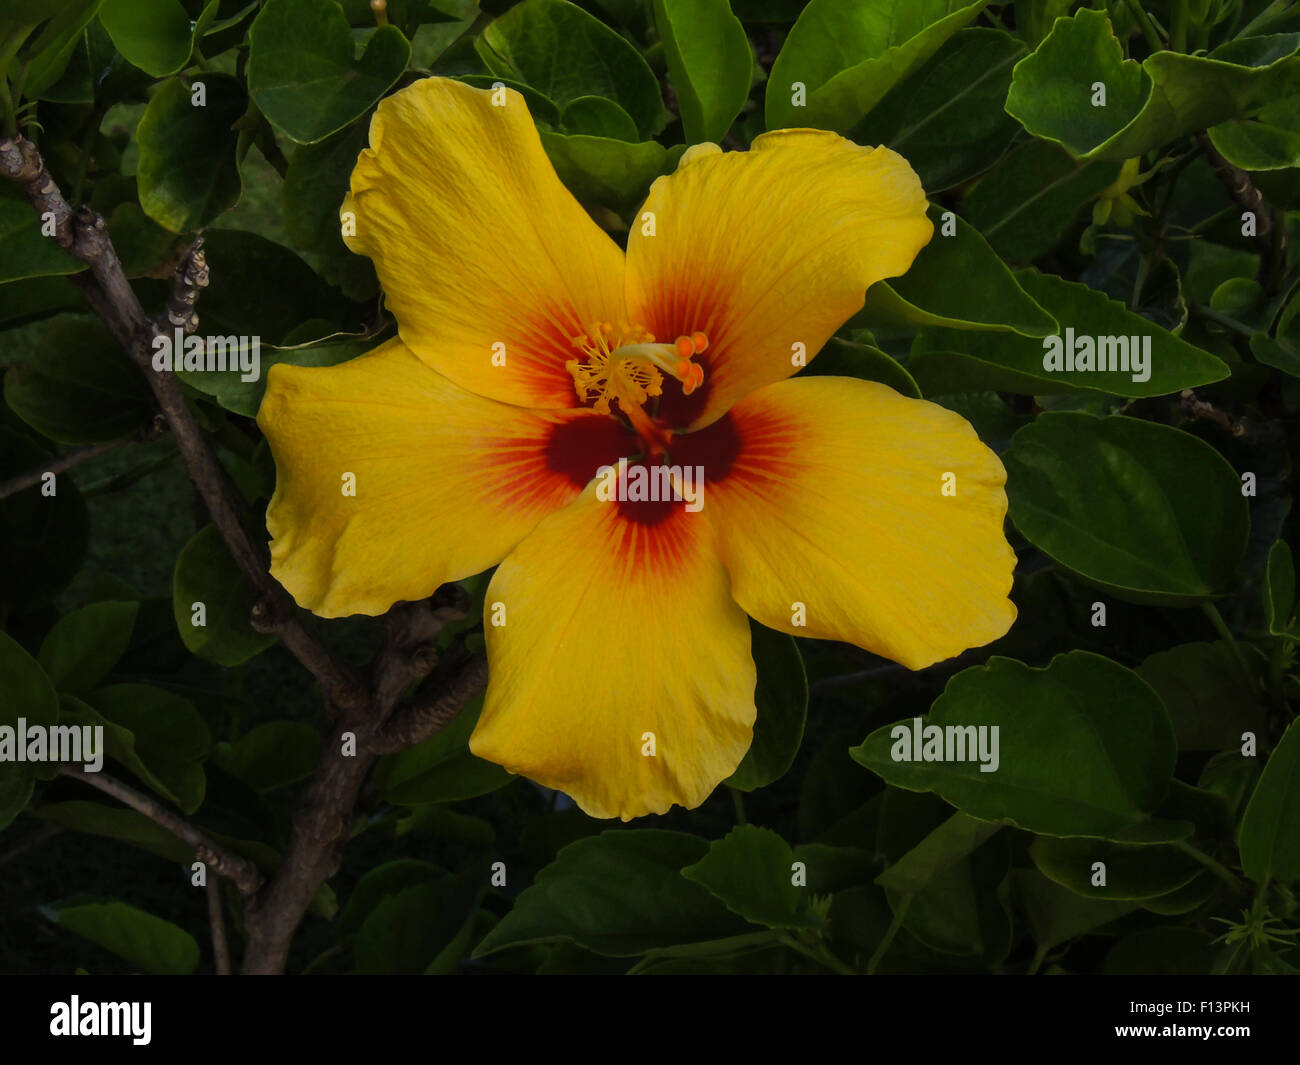 Native hibiscus stock photos native hibiscus stock images alamy hibiscus flower state flower of hawaii is a tropical or sub tropical flower that izmirmasajfo